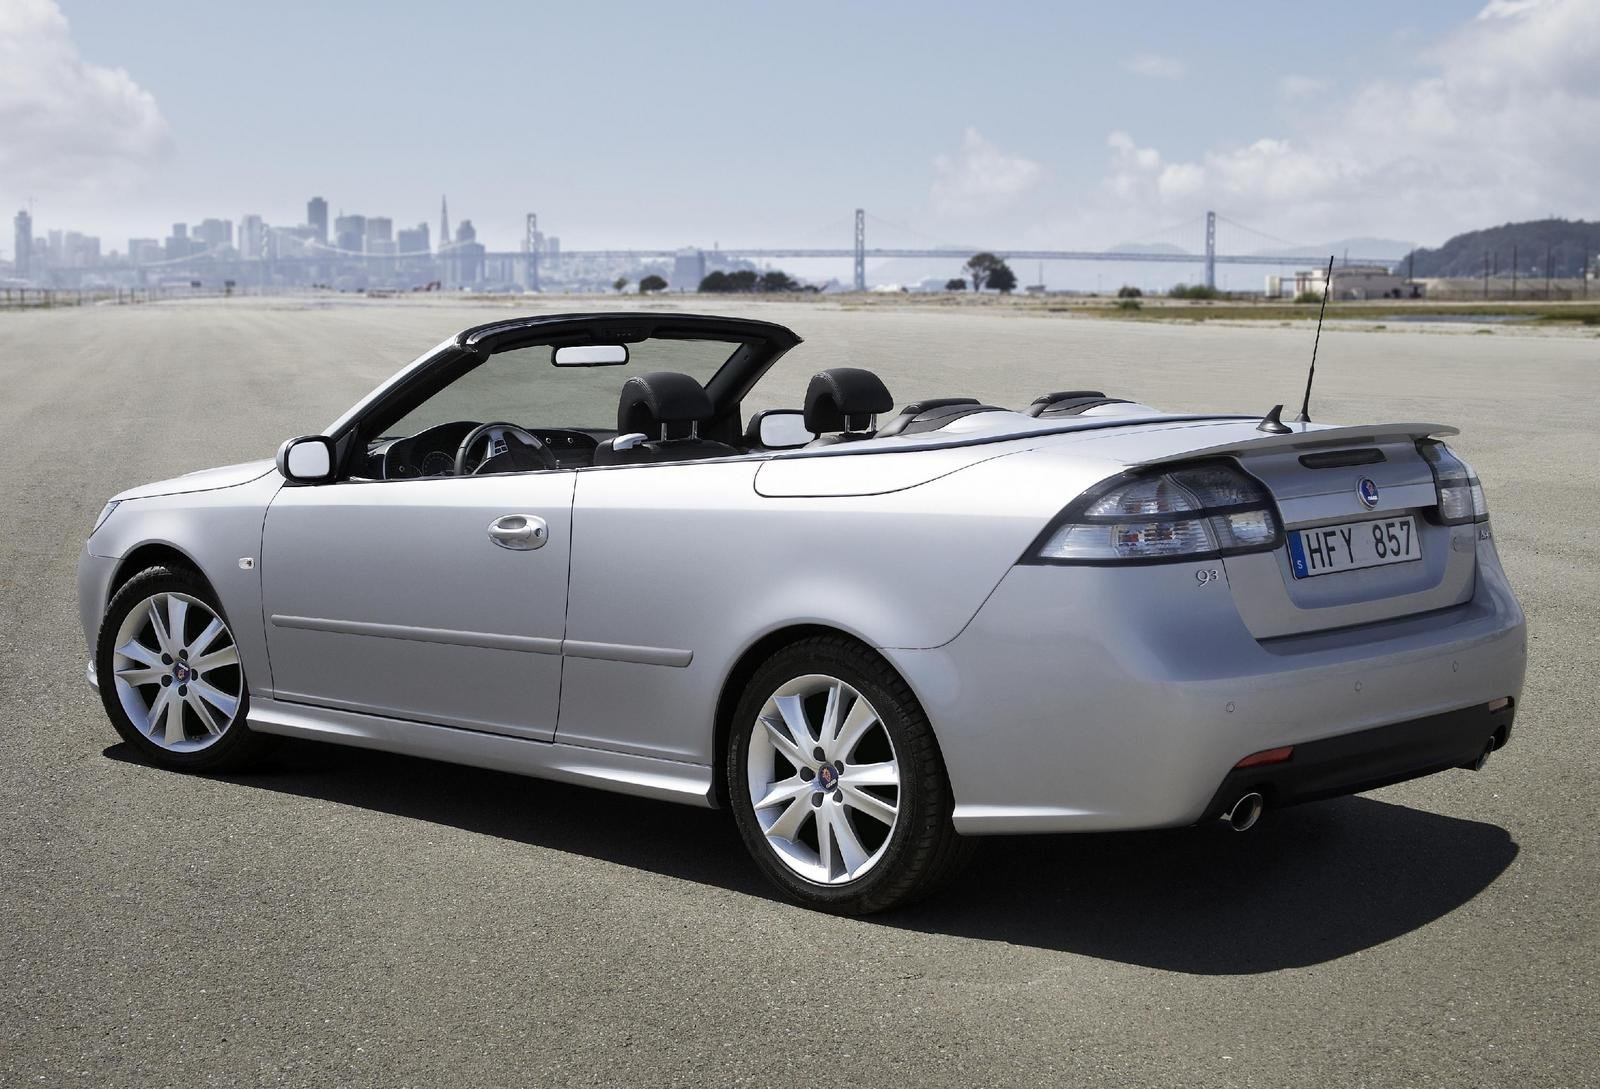 2008 saab 9 3 convertible picture 176654 car review. Black Bedroom Furniture Sets. Home Design Ideas